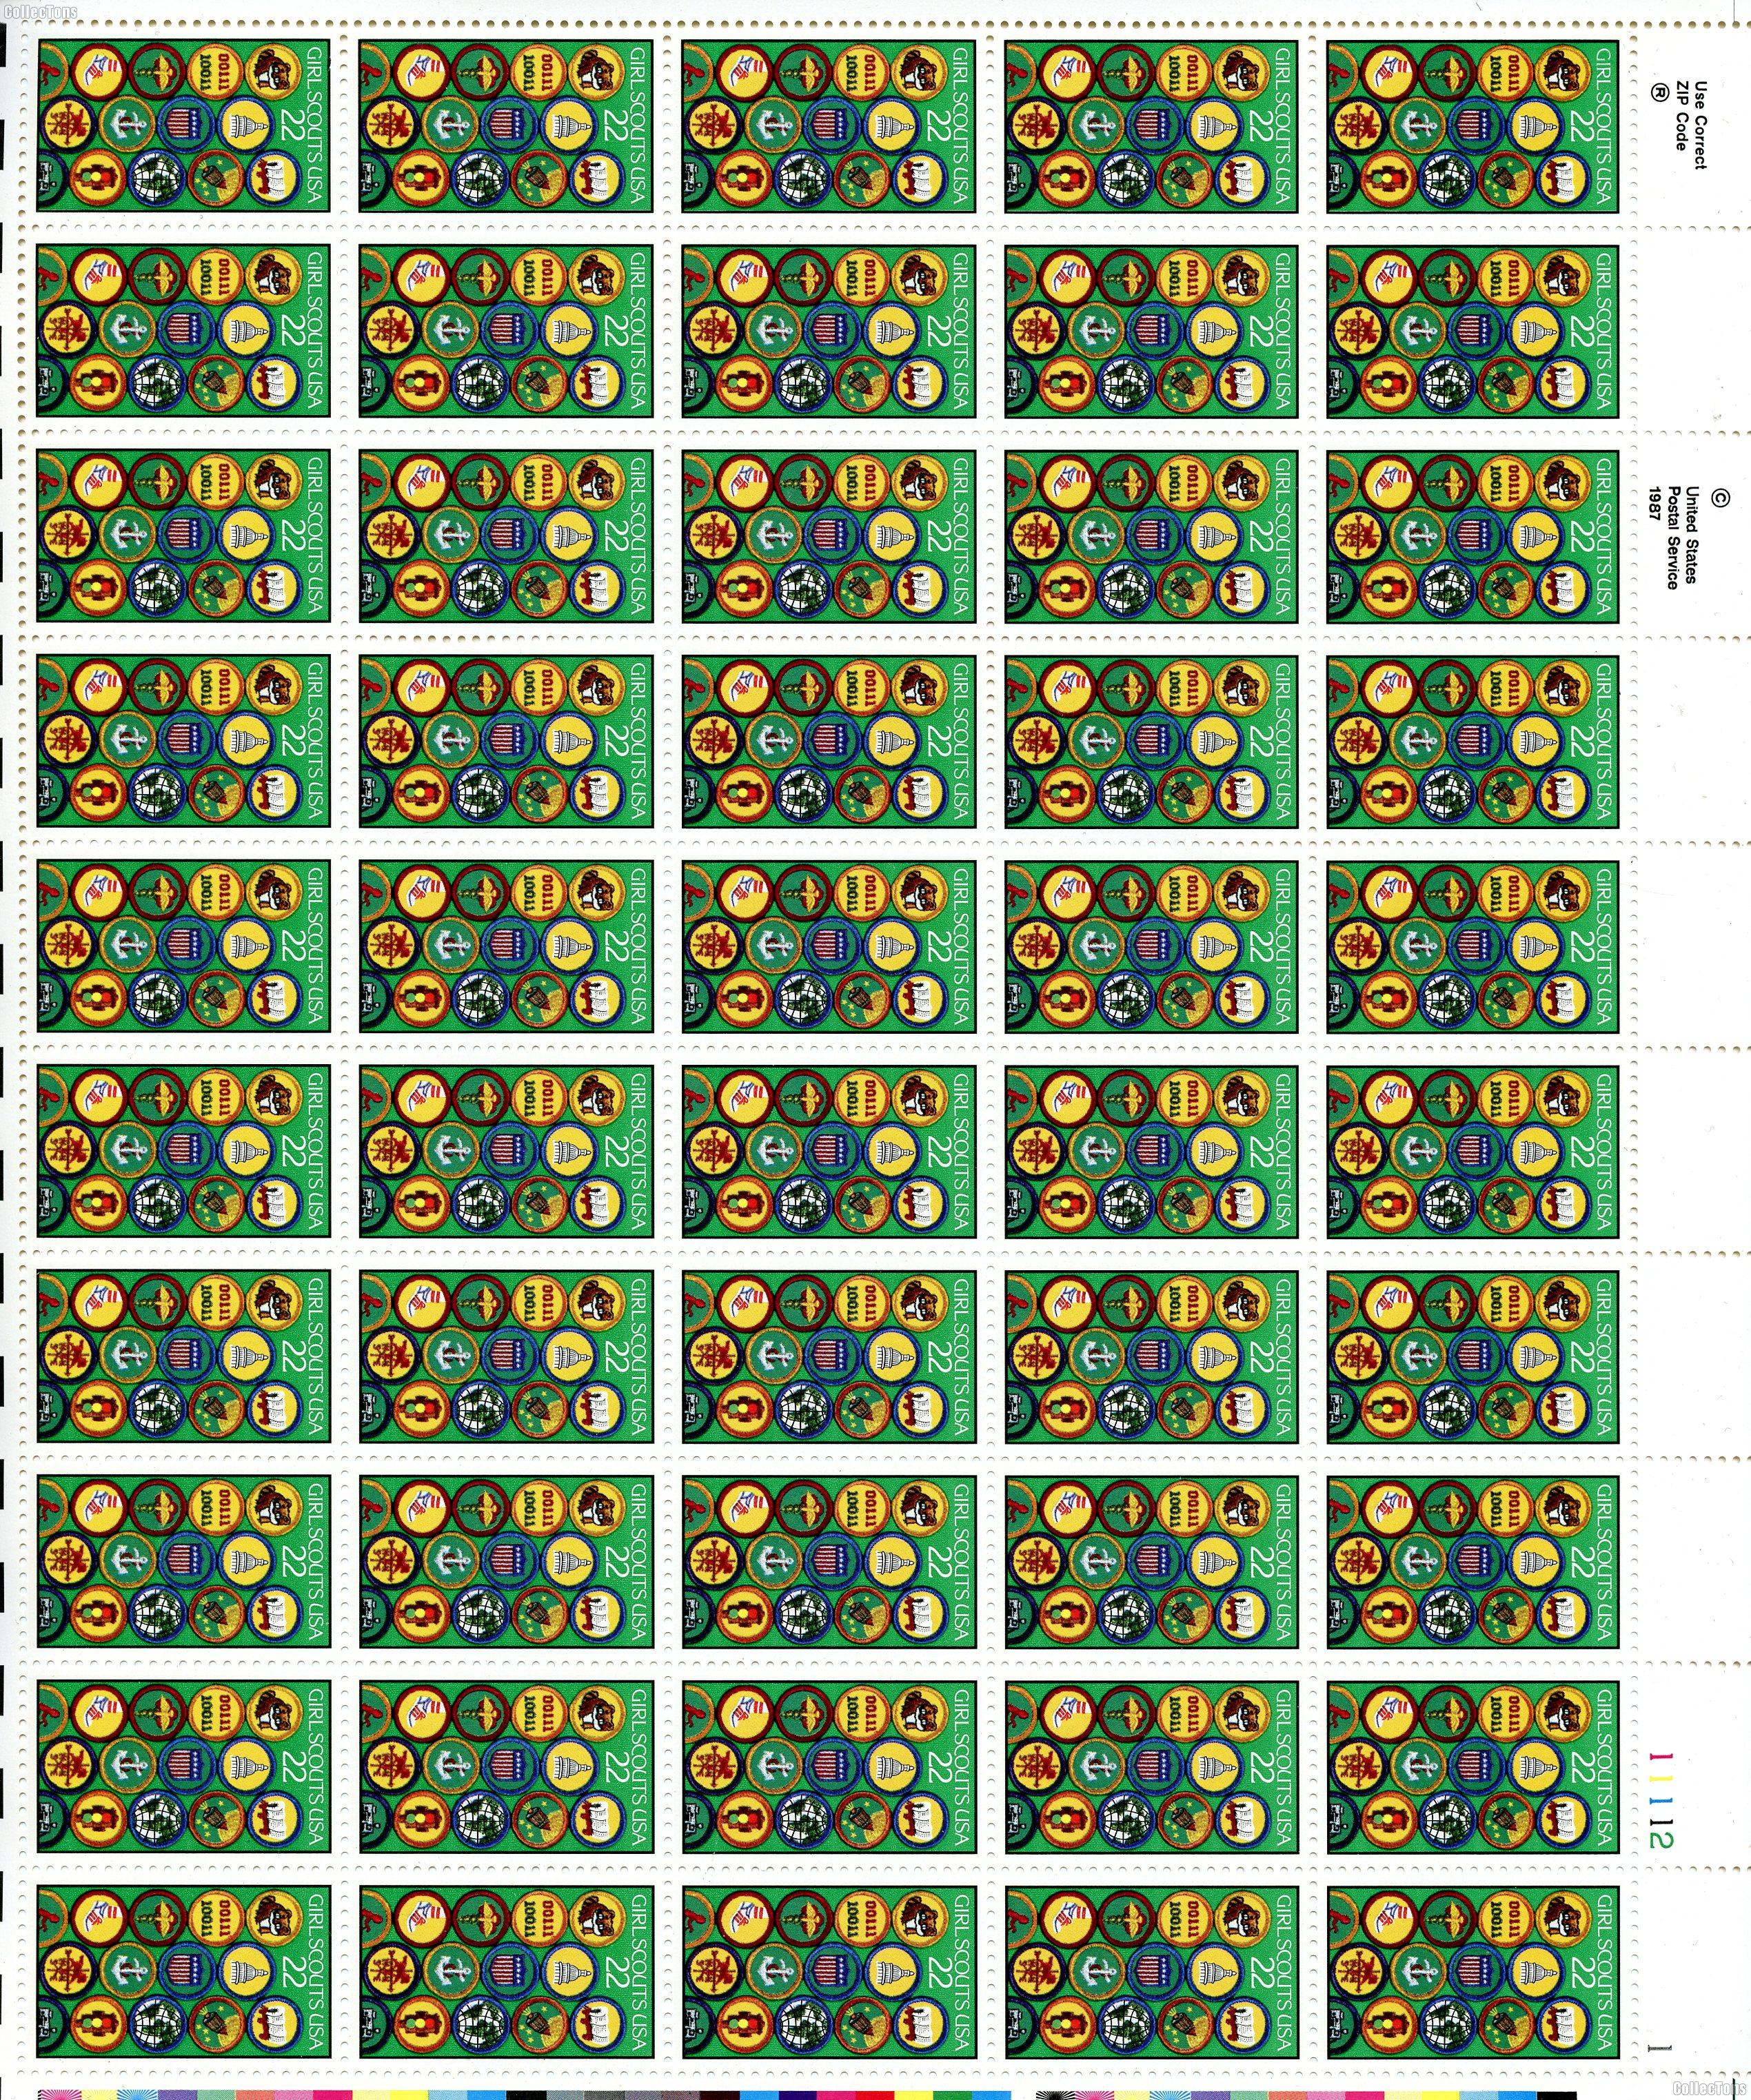 1987 Girl Scouts 22 Cent US Postage Stamp MNH Sheet of 50 Scott #2251